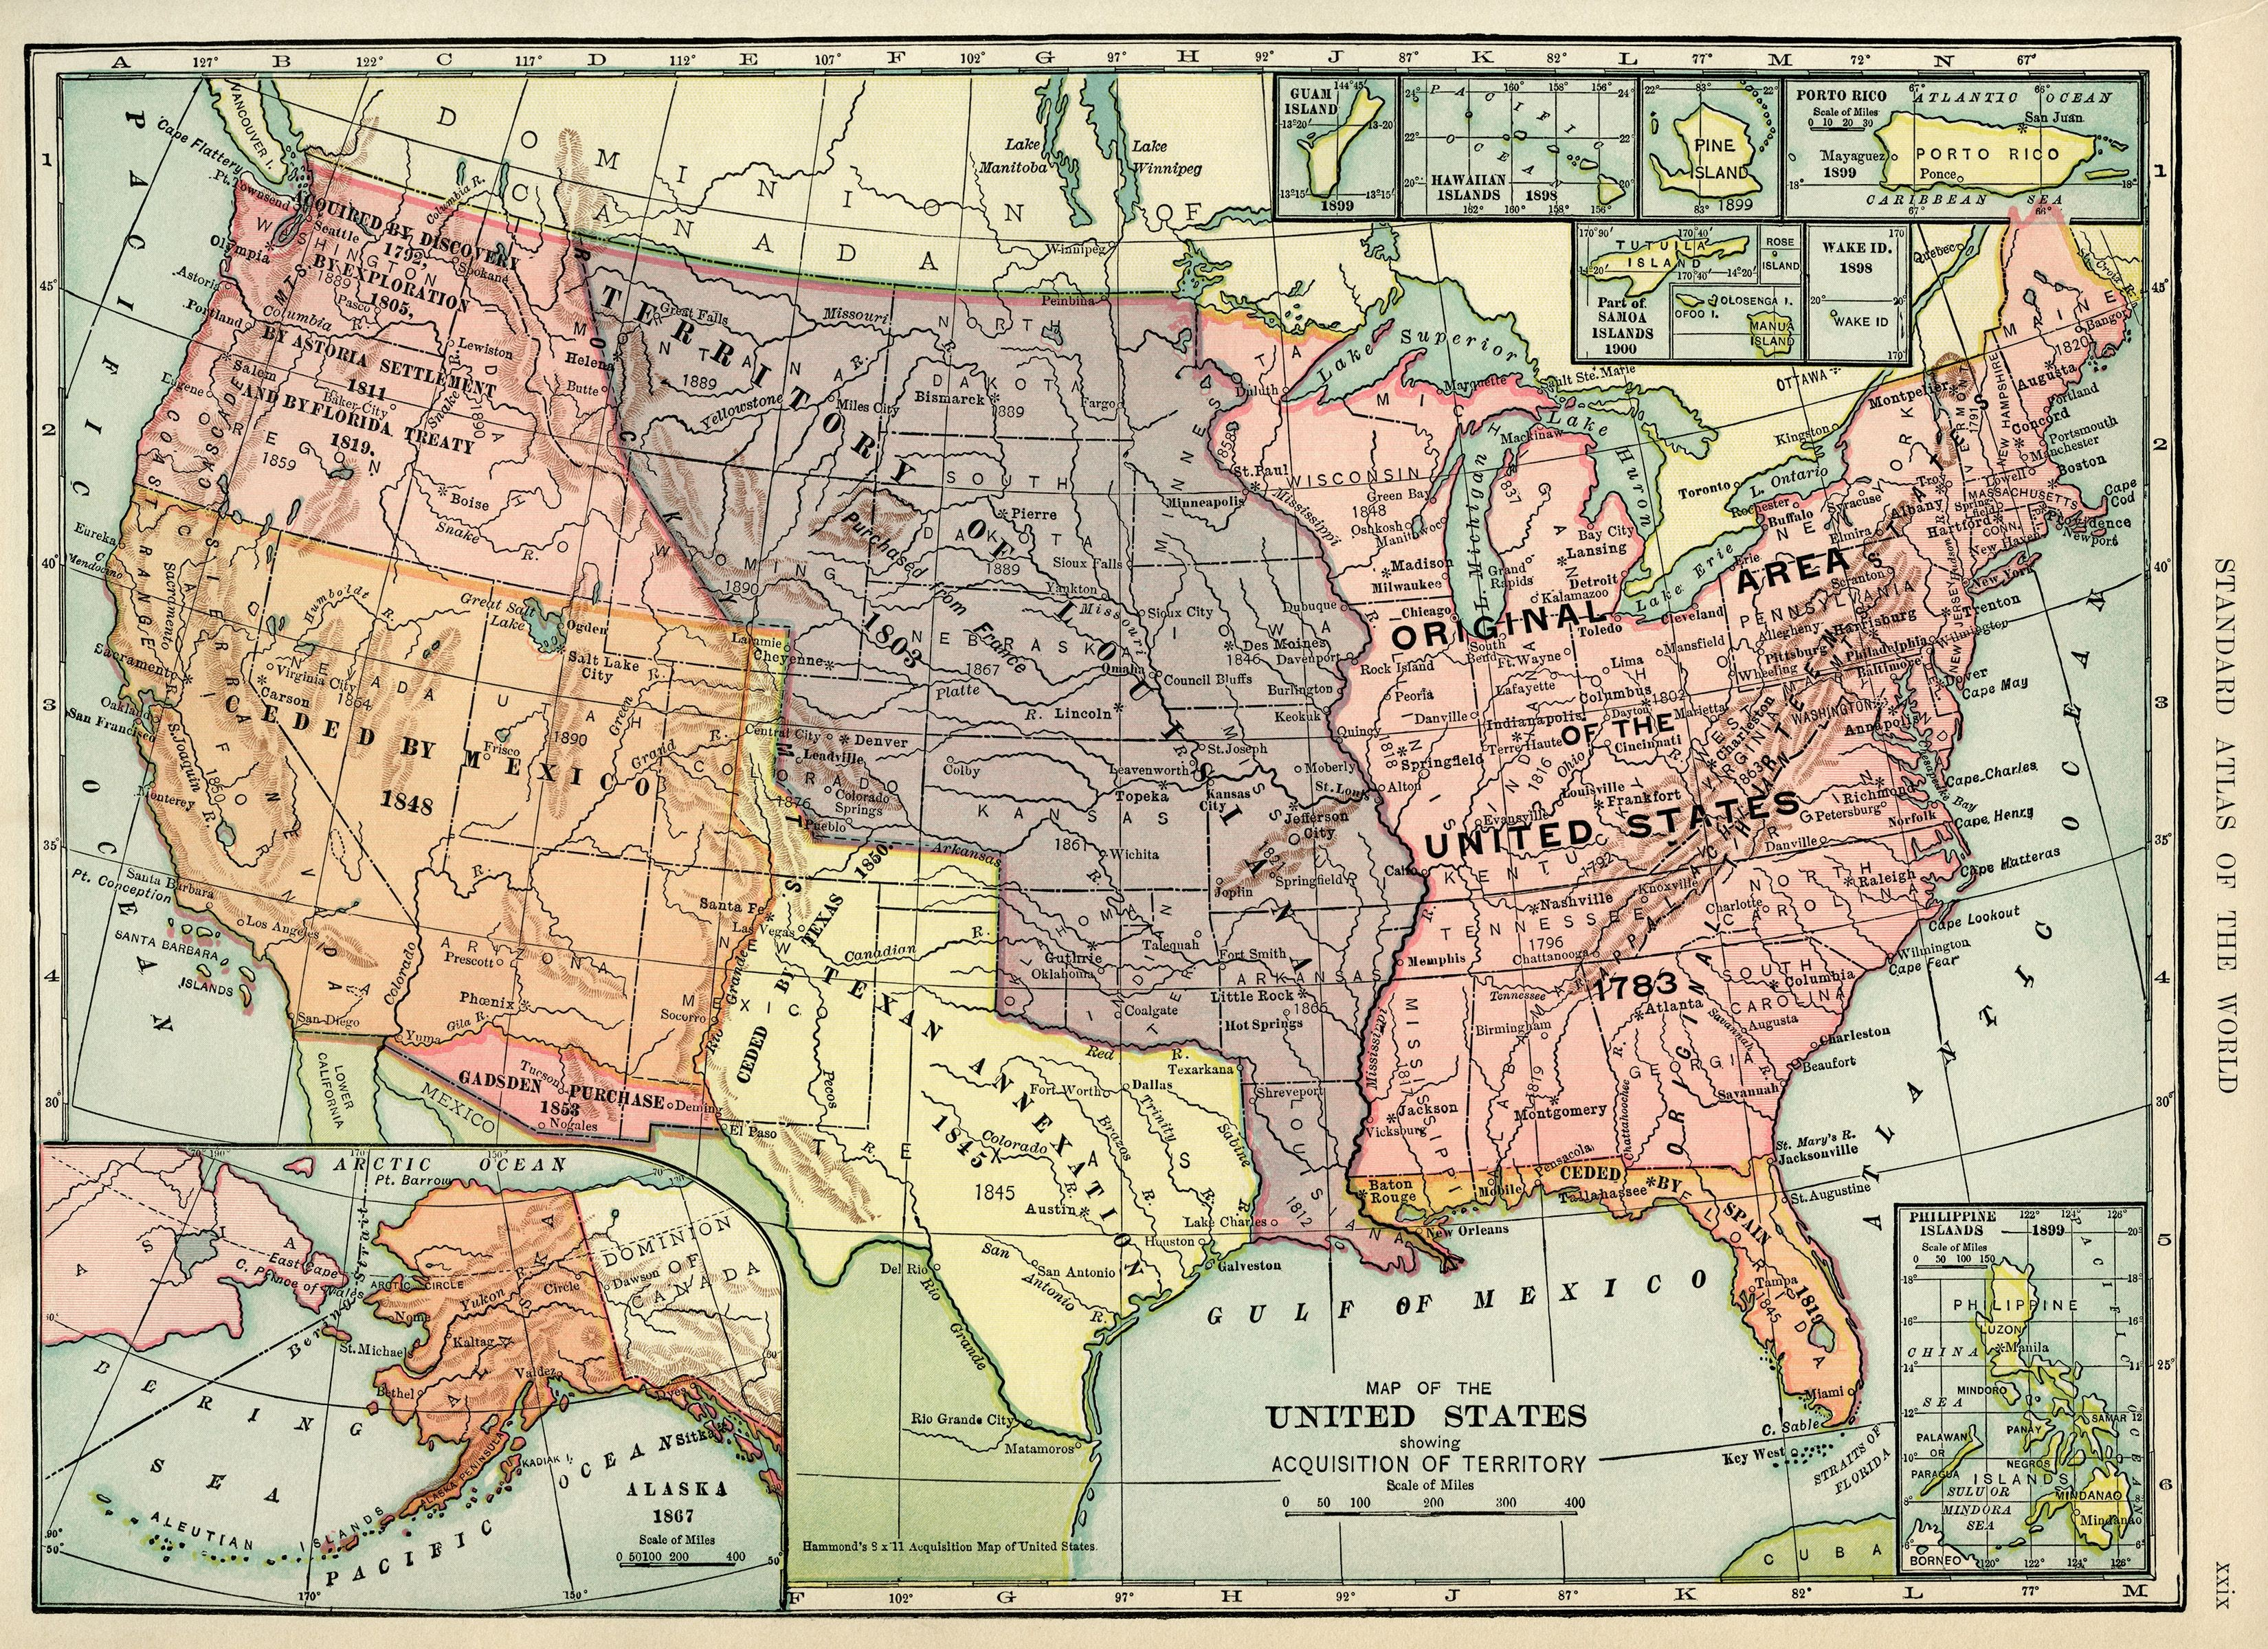 National Geographic Us Map Printable Best United States Map Vintage - National Geographic Printable Maps